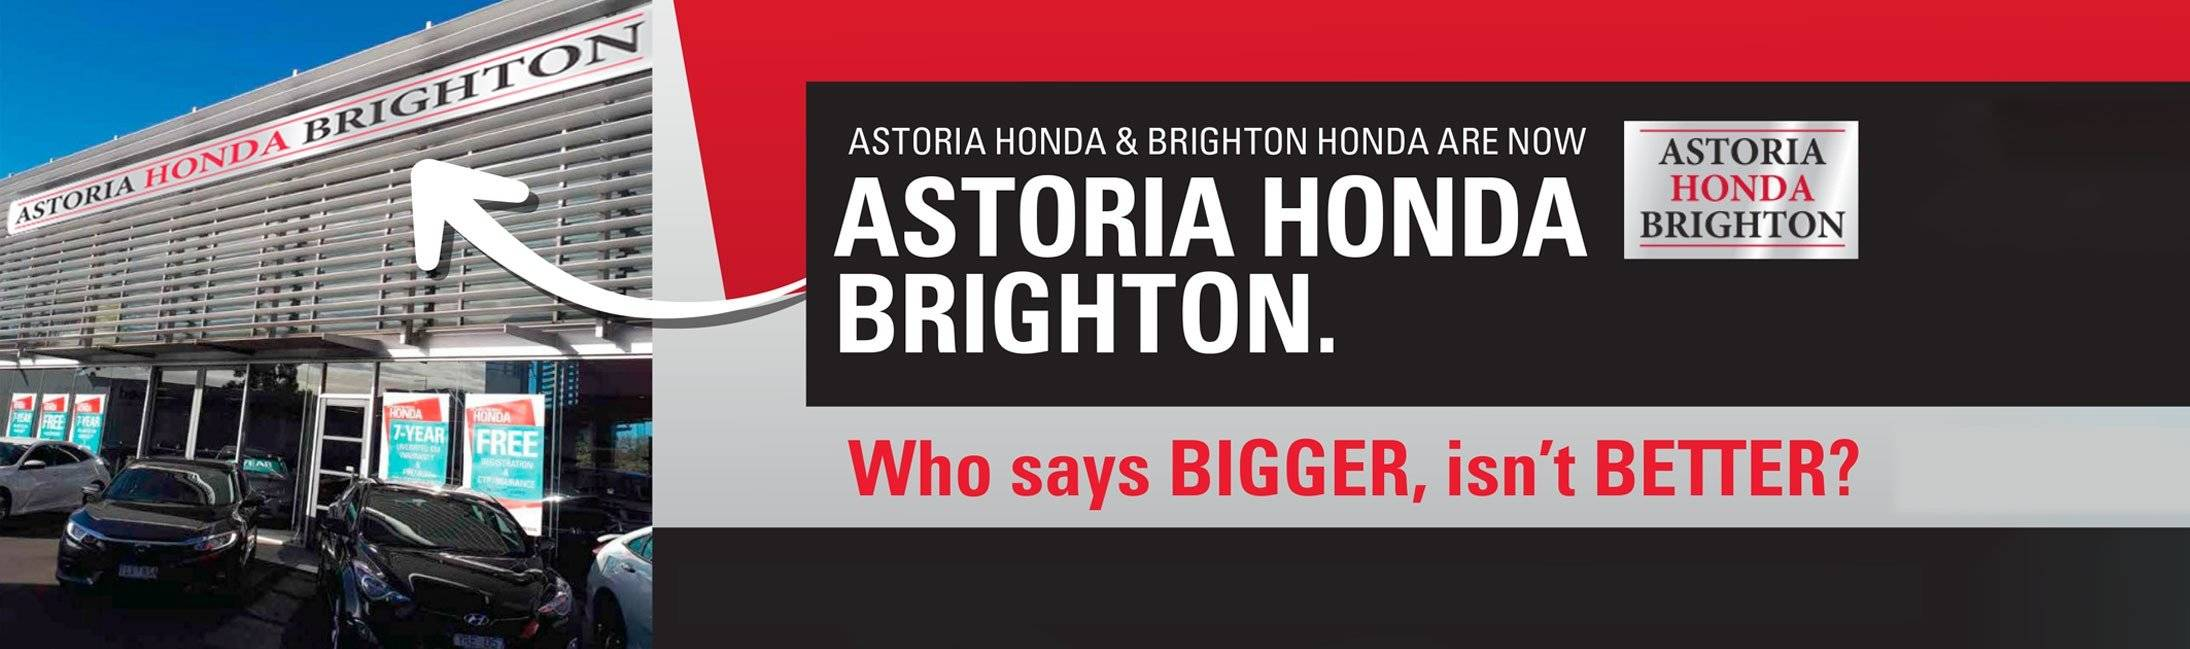 Astoria Honda Brighton, Bentleigh Melbourne